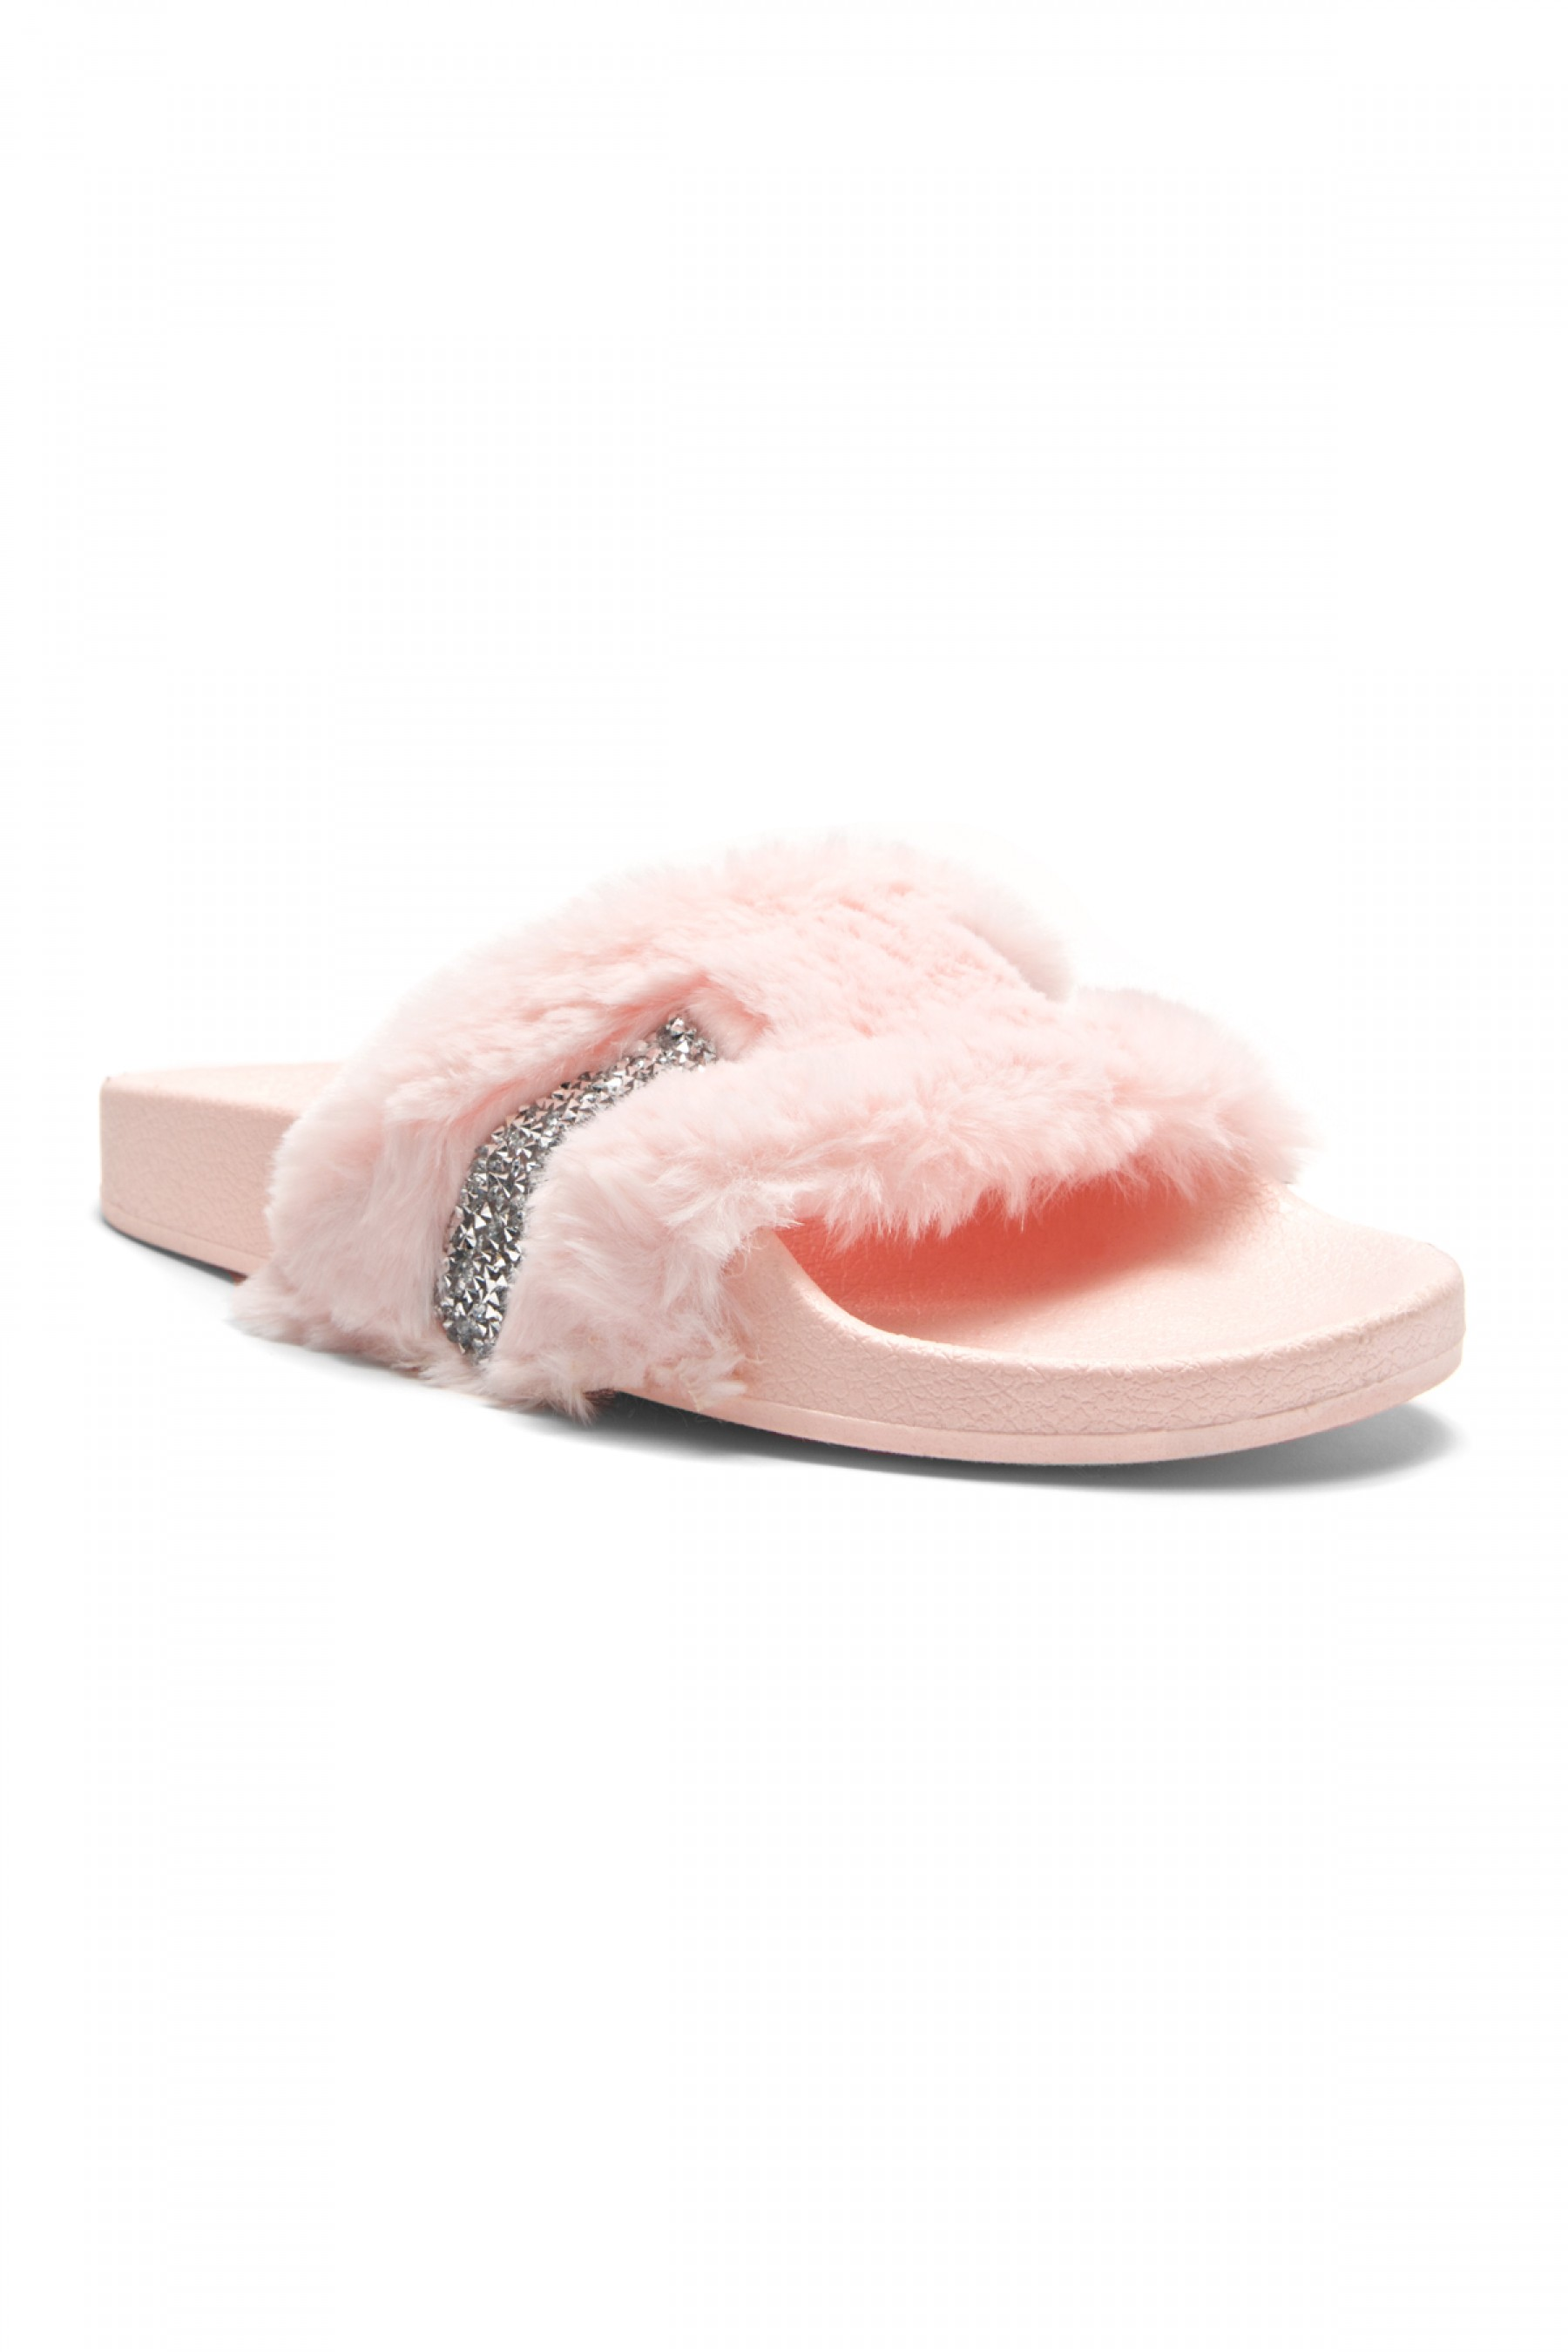 2a8ecb1fc HerStyle SL-16110101 Faux Fur Slide Sandal with Rhinestone Accent ...